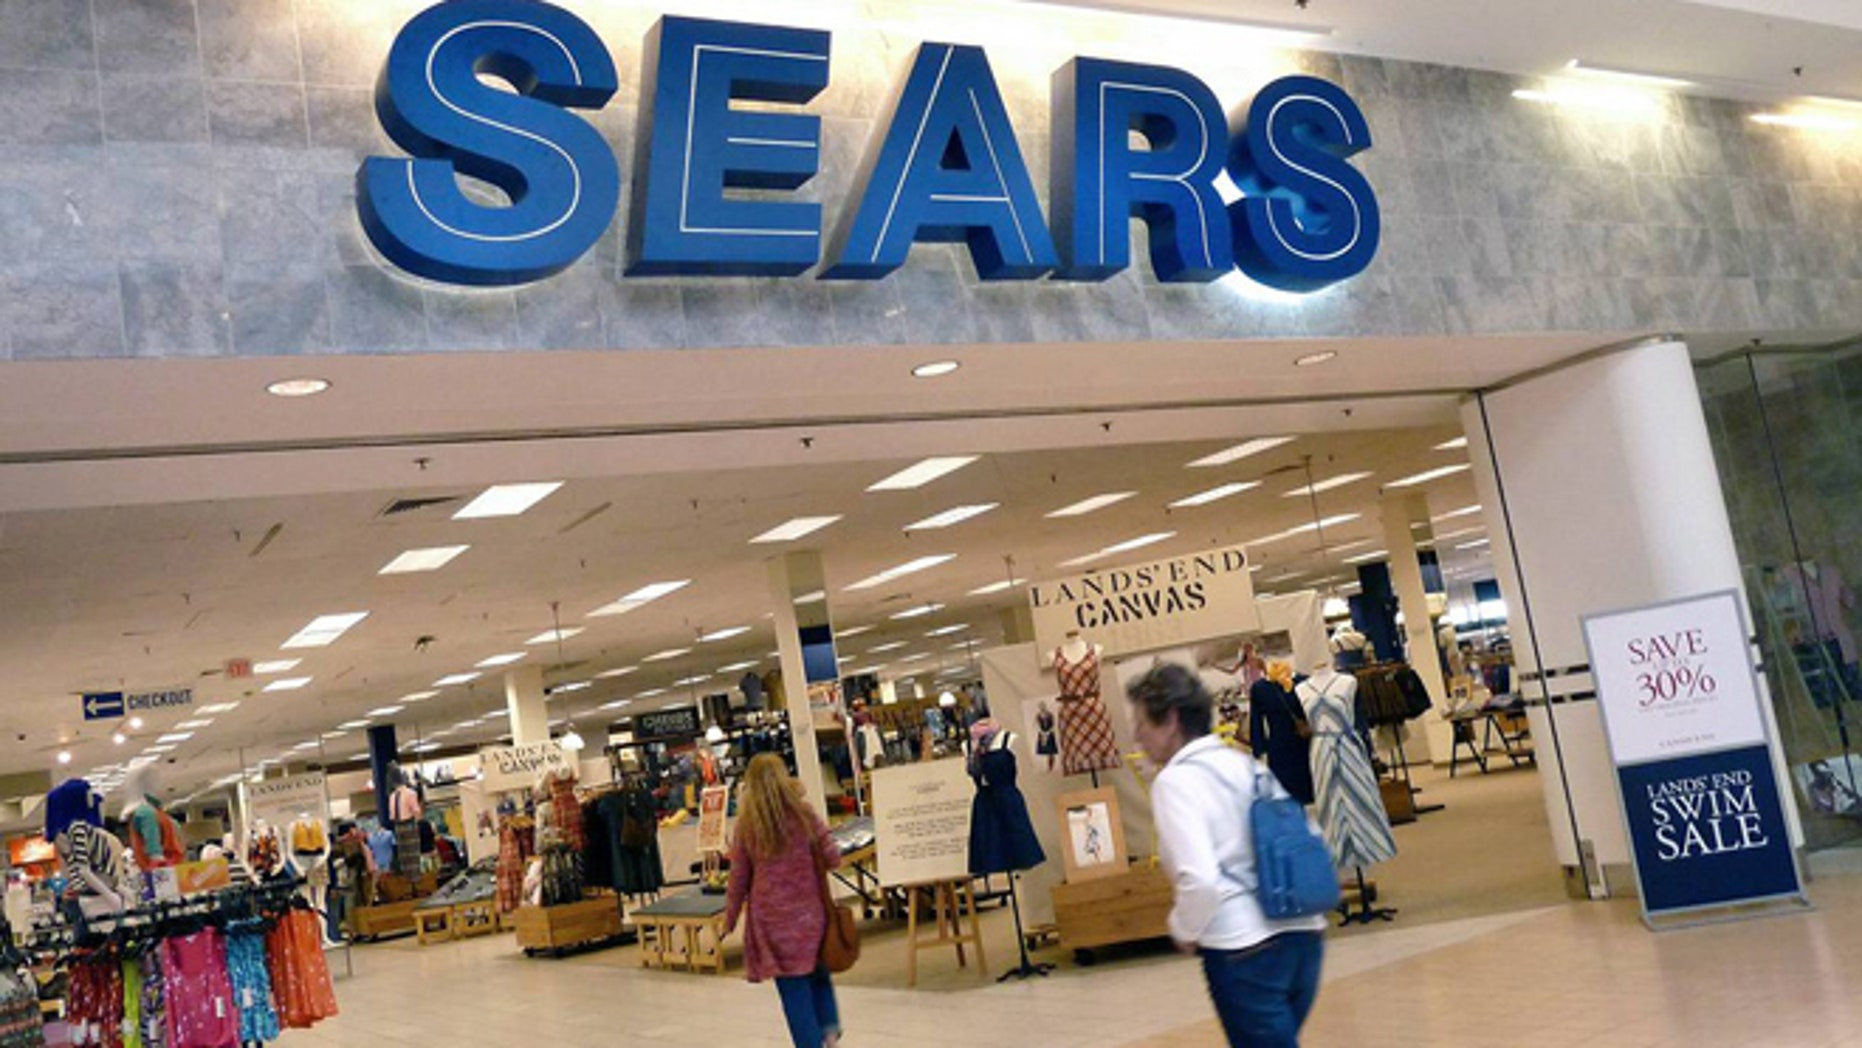 A Sears store is shown. (Associated Press)